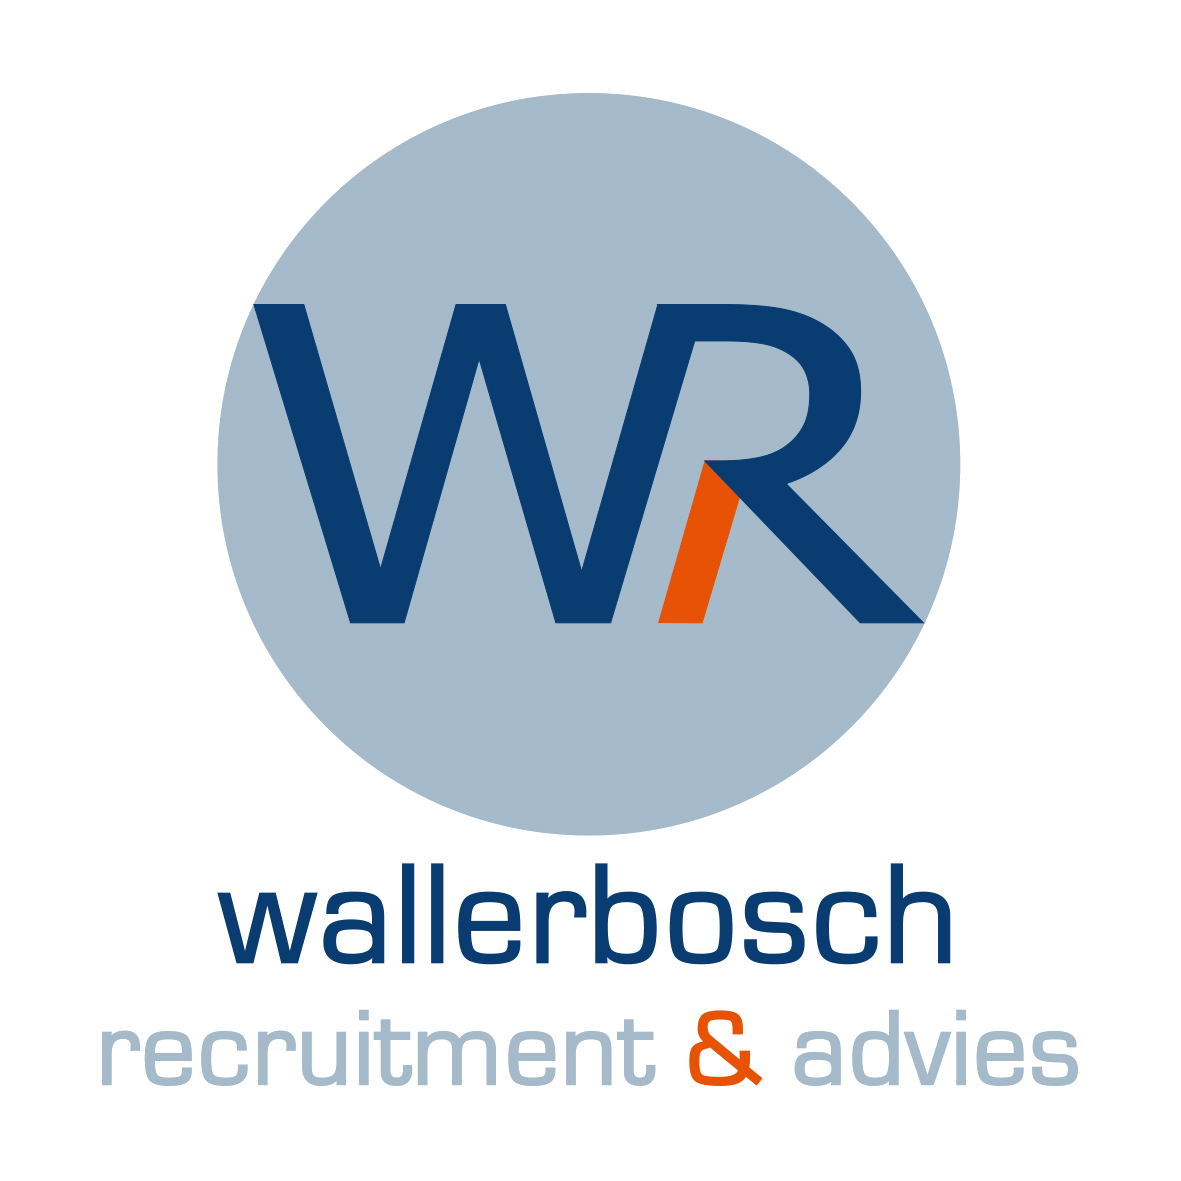 Wallerbosch Recruitment